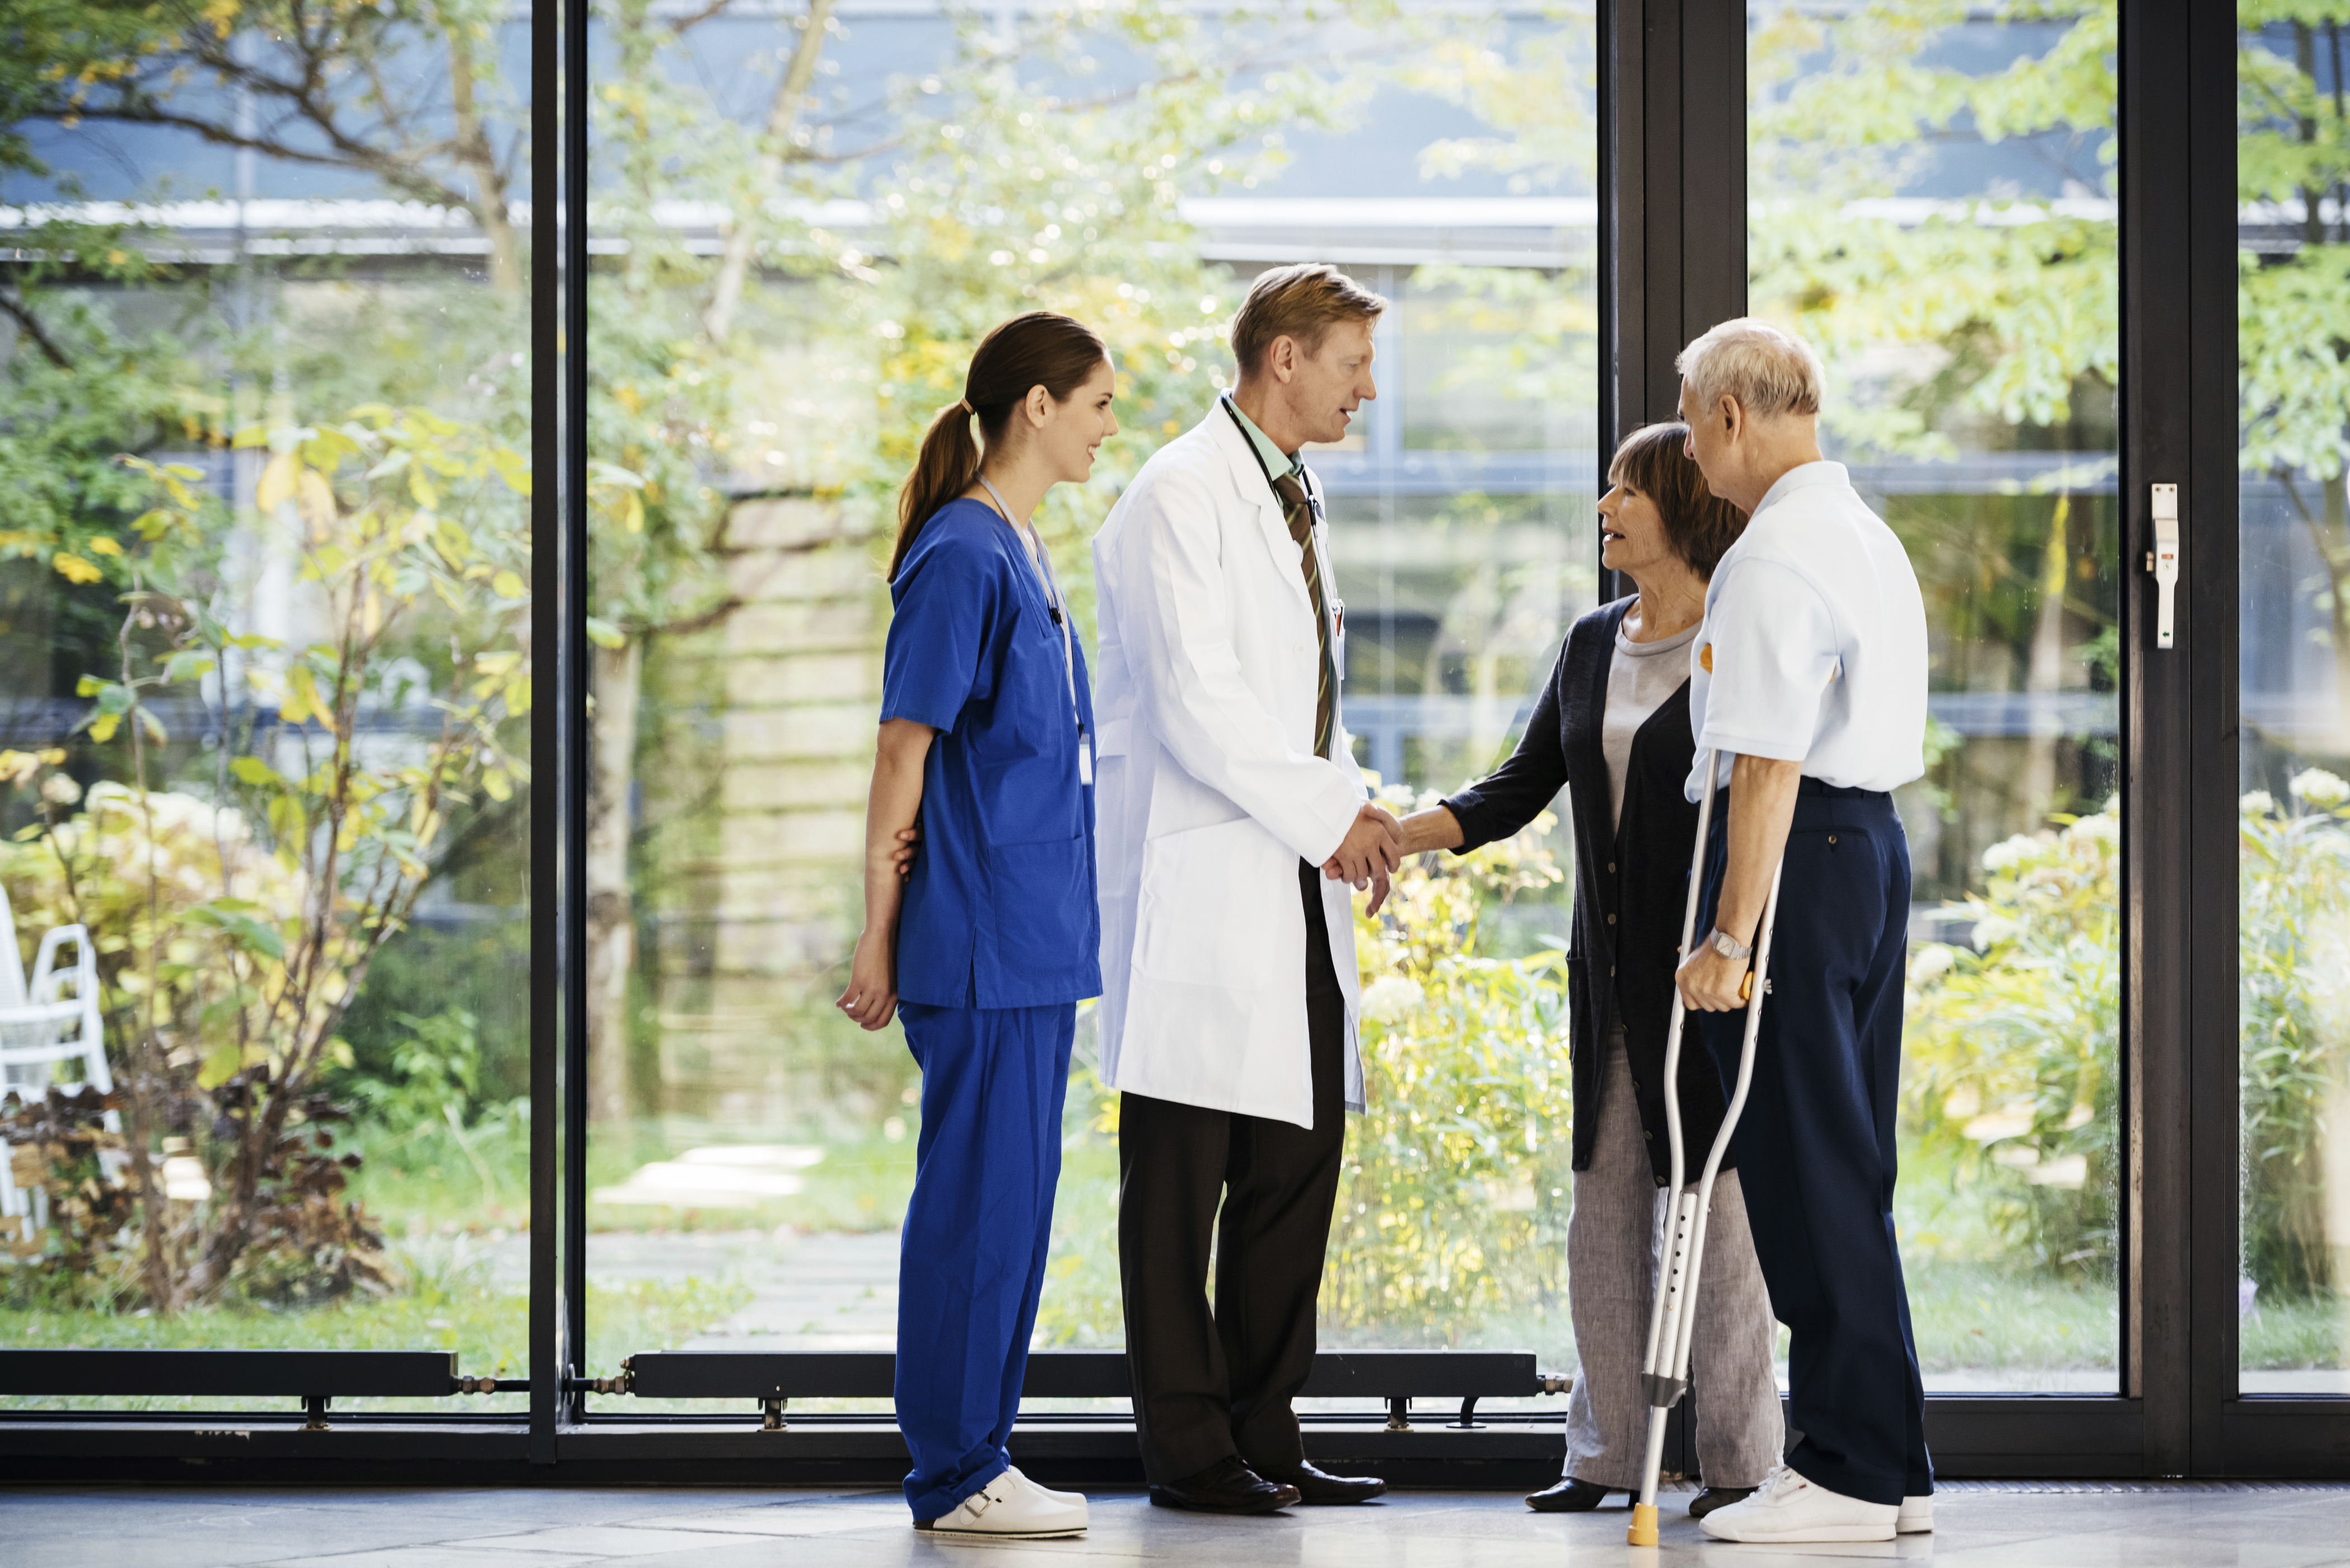 Concierge care – 'designer' health care that's flexible, affordable